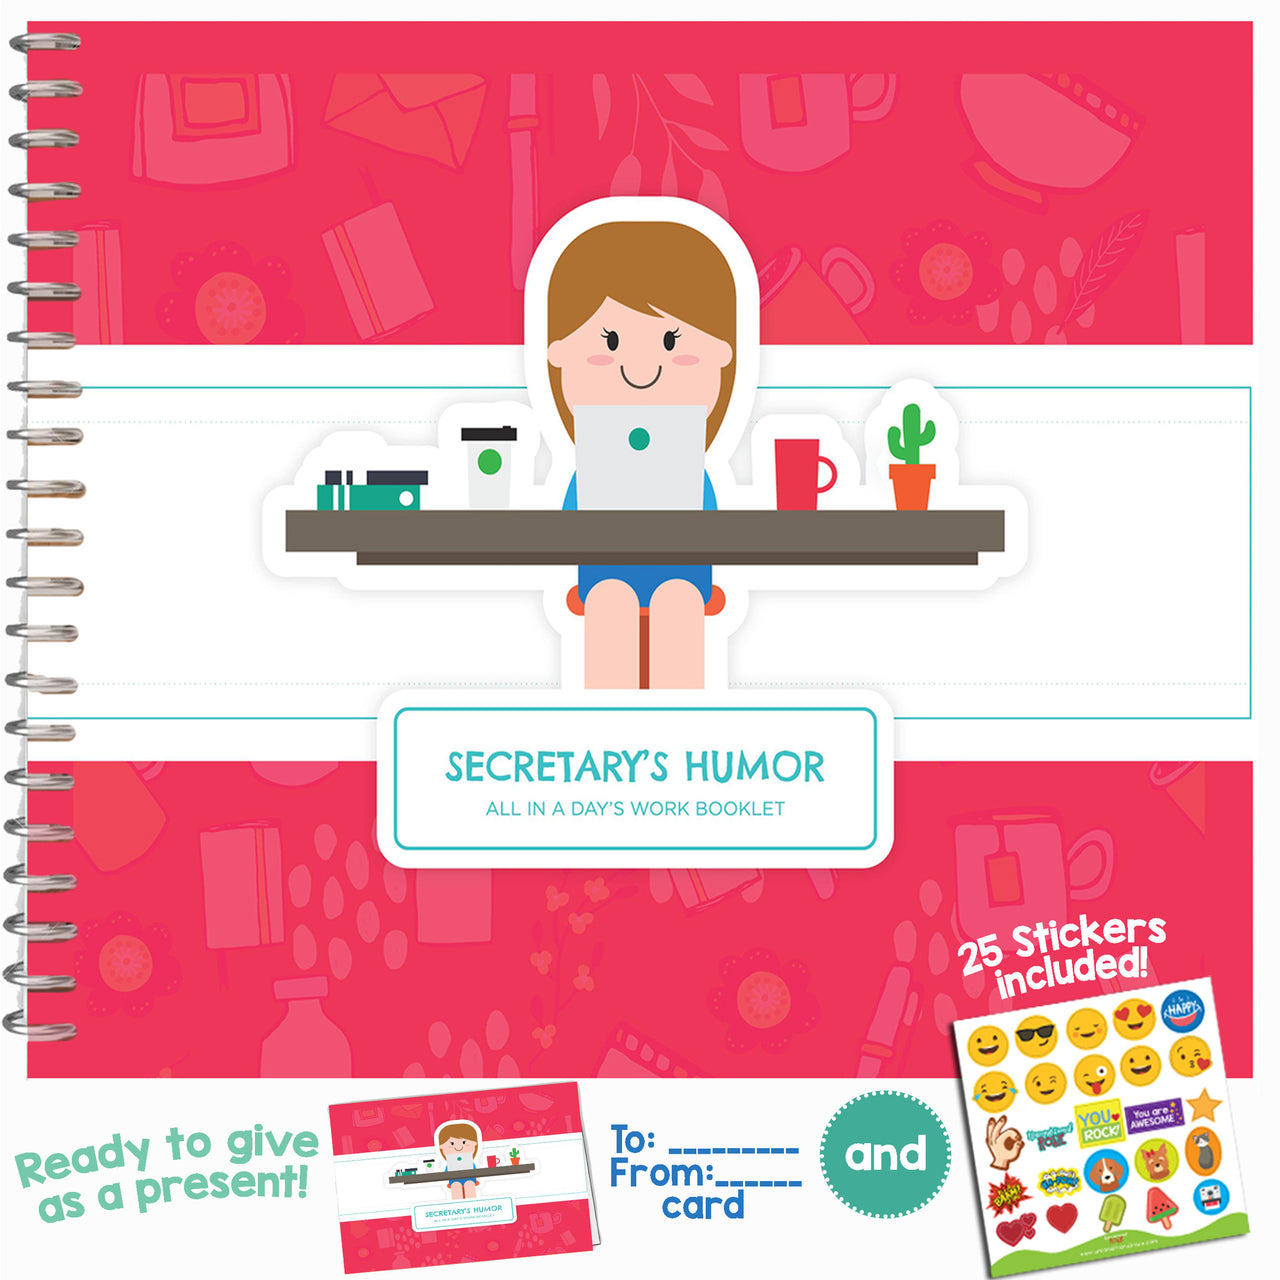 SECRETARY GIFTS - Personalizable Humor Booklet With Matching Card